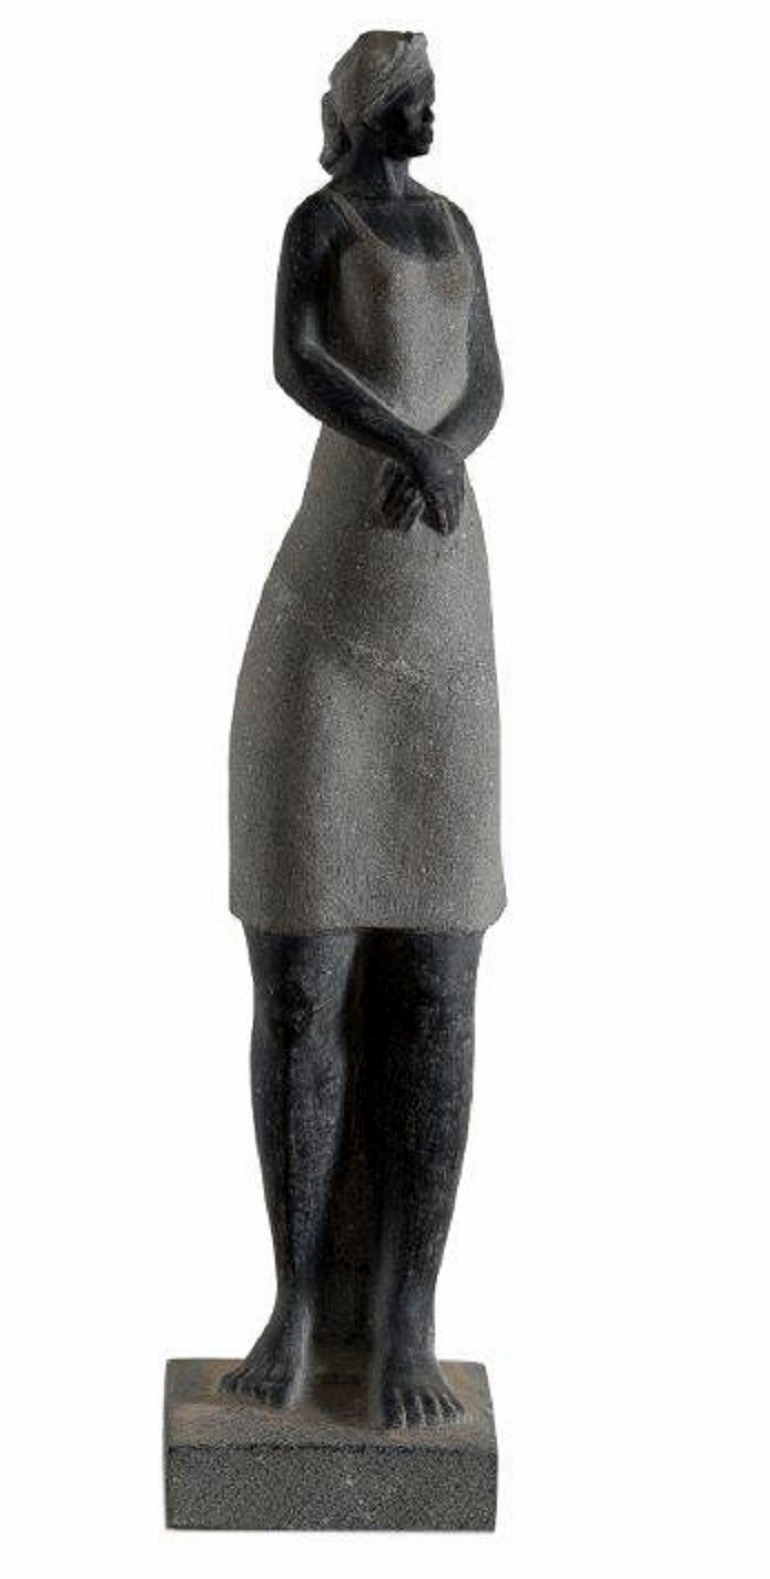 Image: Hani Faisal's sculpture titled Standing Girl is one the sculptures on display at the Al Masar Gallery in Egypt-Art